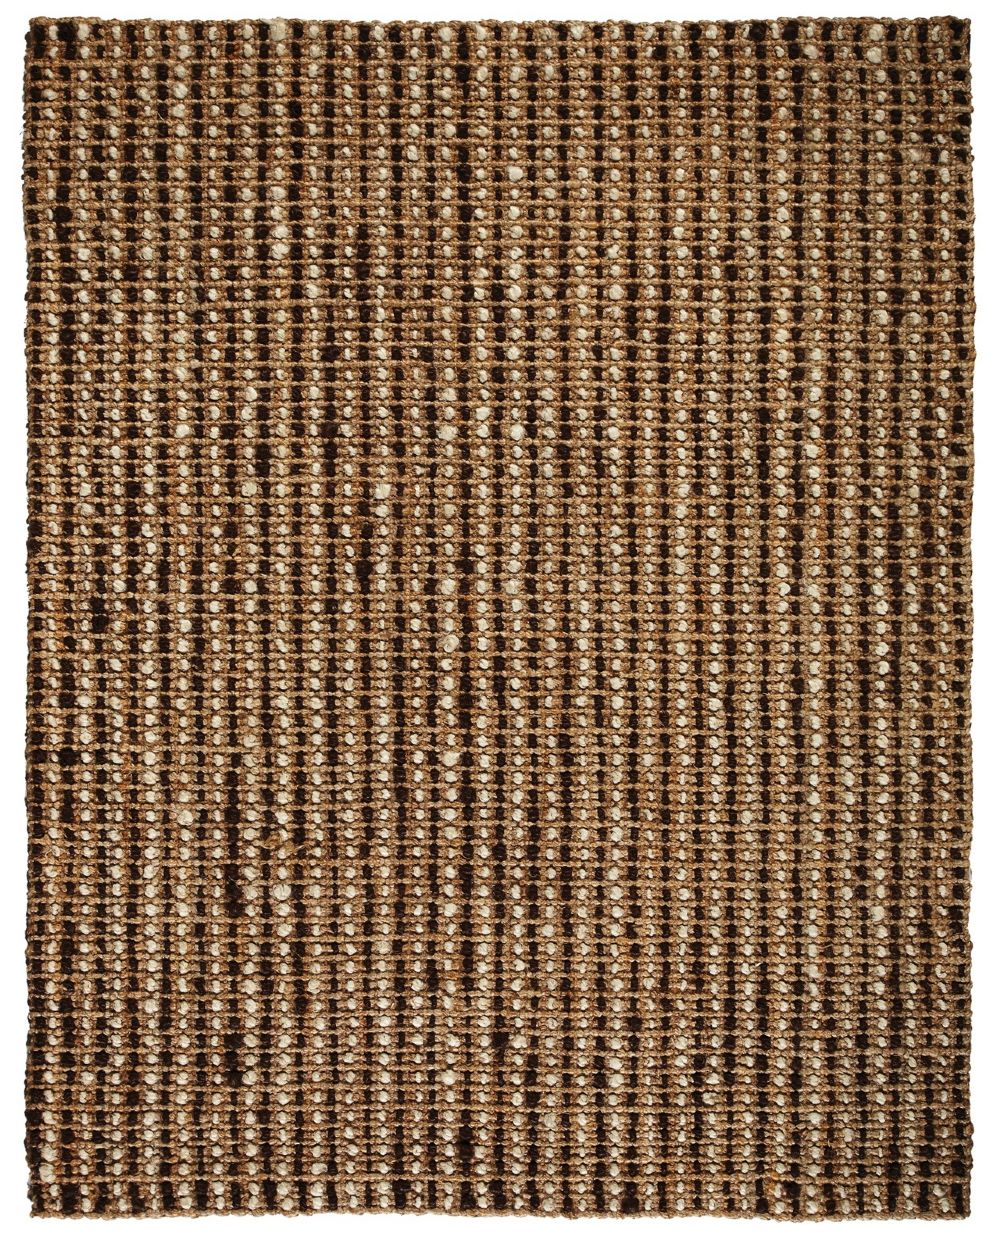 anji mountain jute natural fiber area rug collection